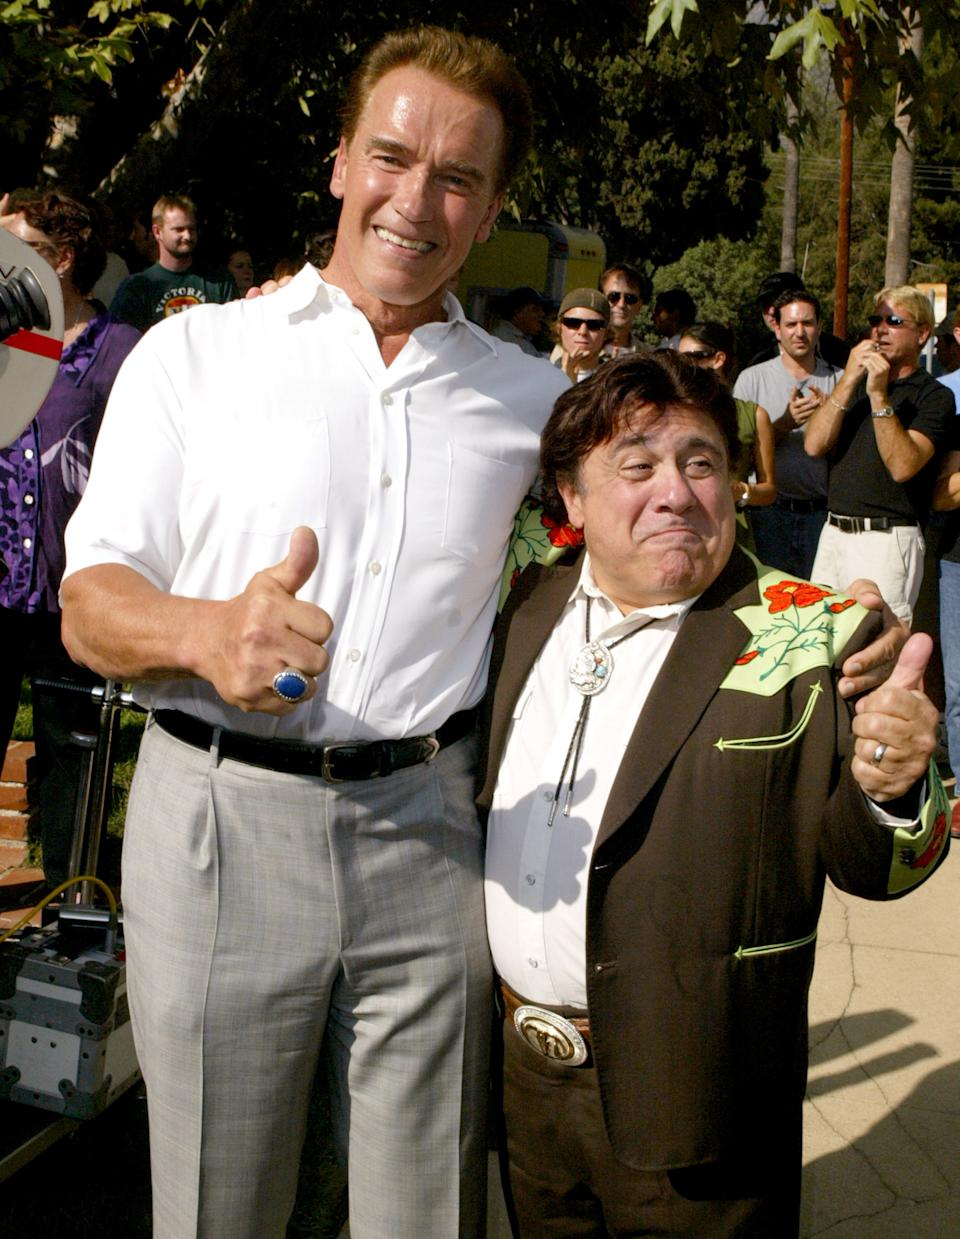 Governor Arnold Schwarzenegger and Danny DeVito at the The Set of